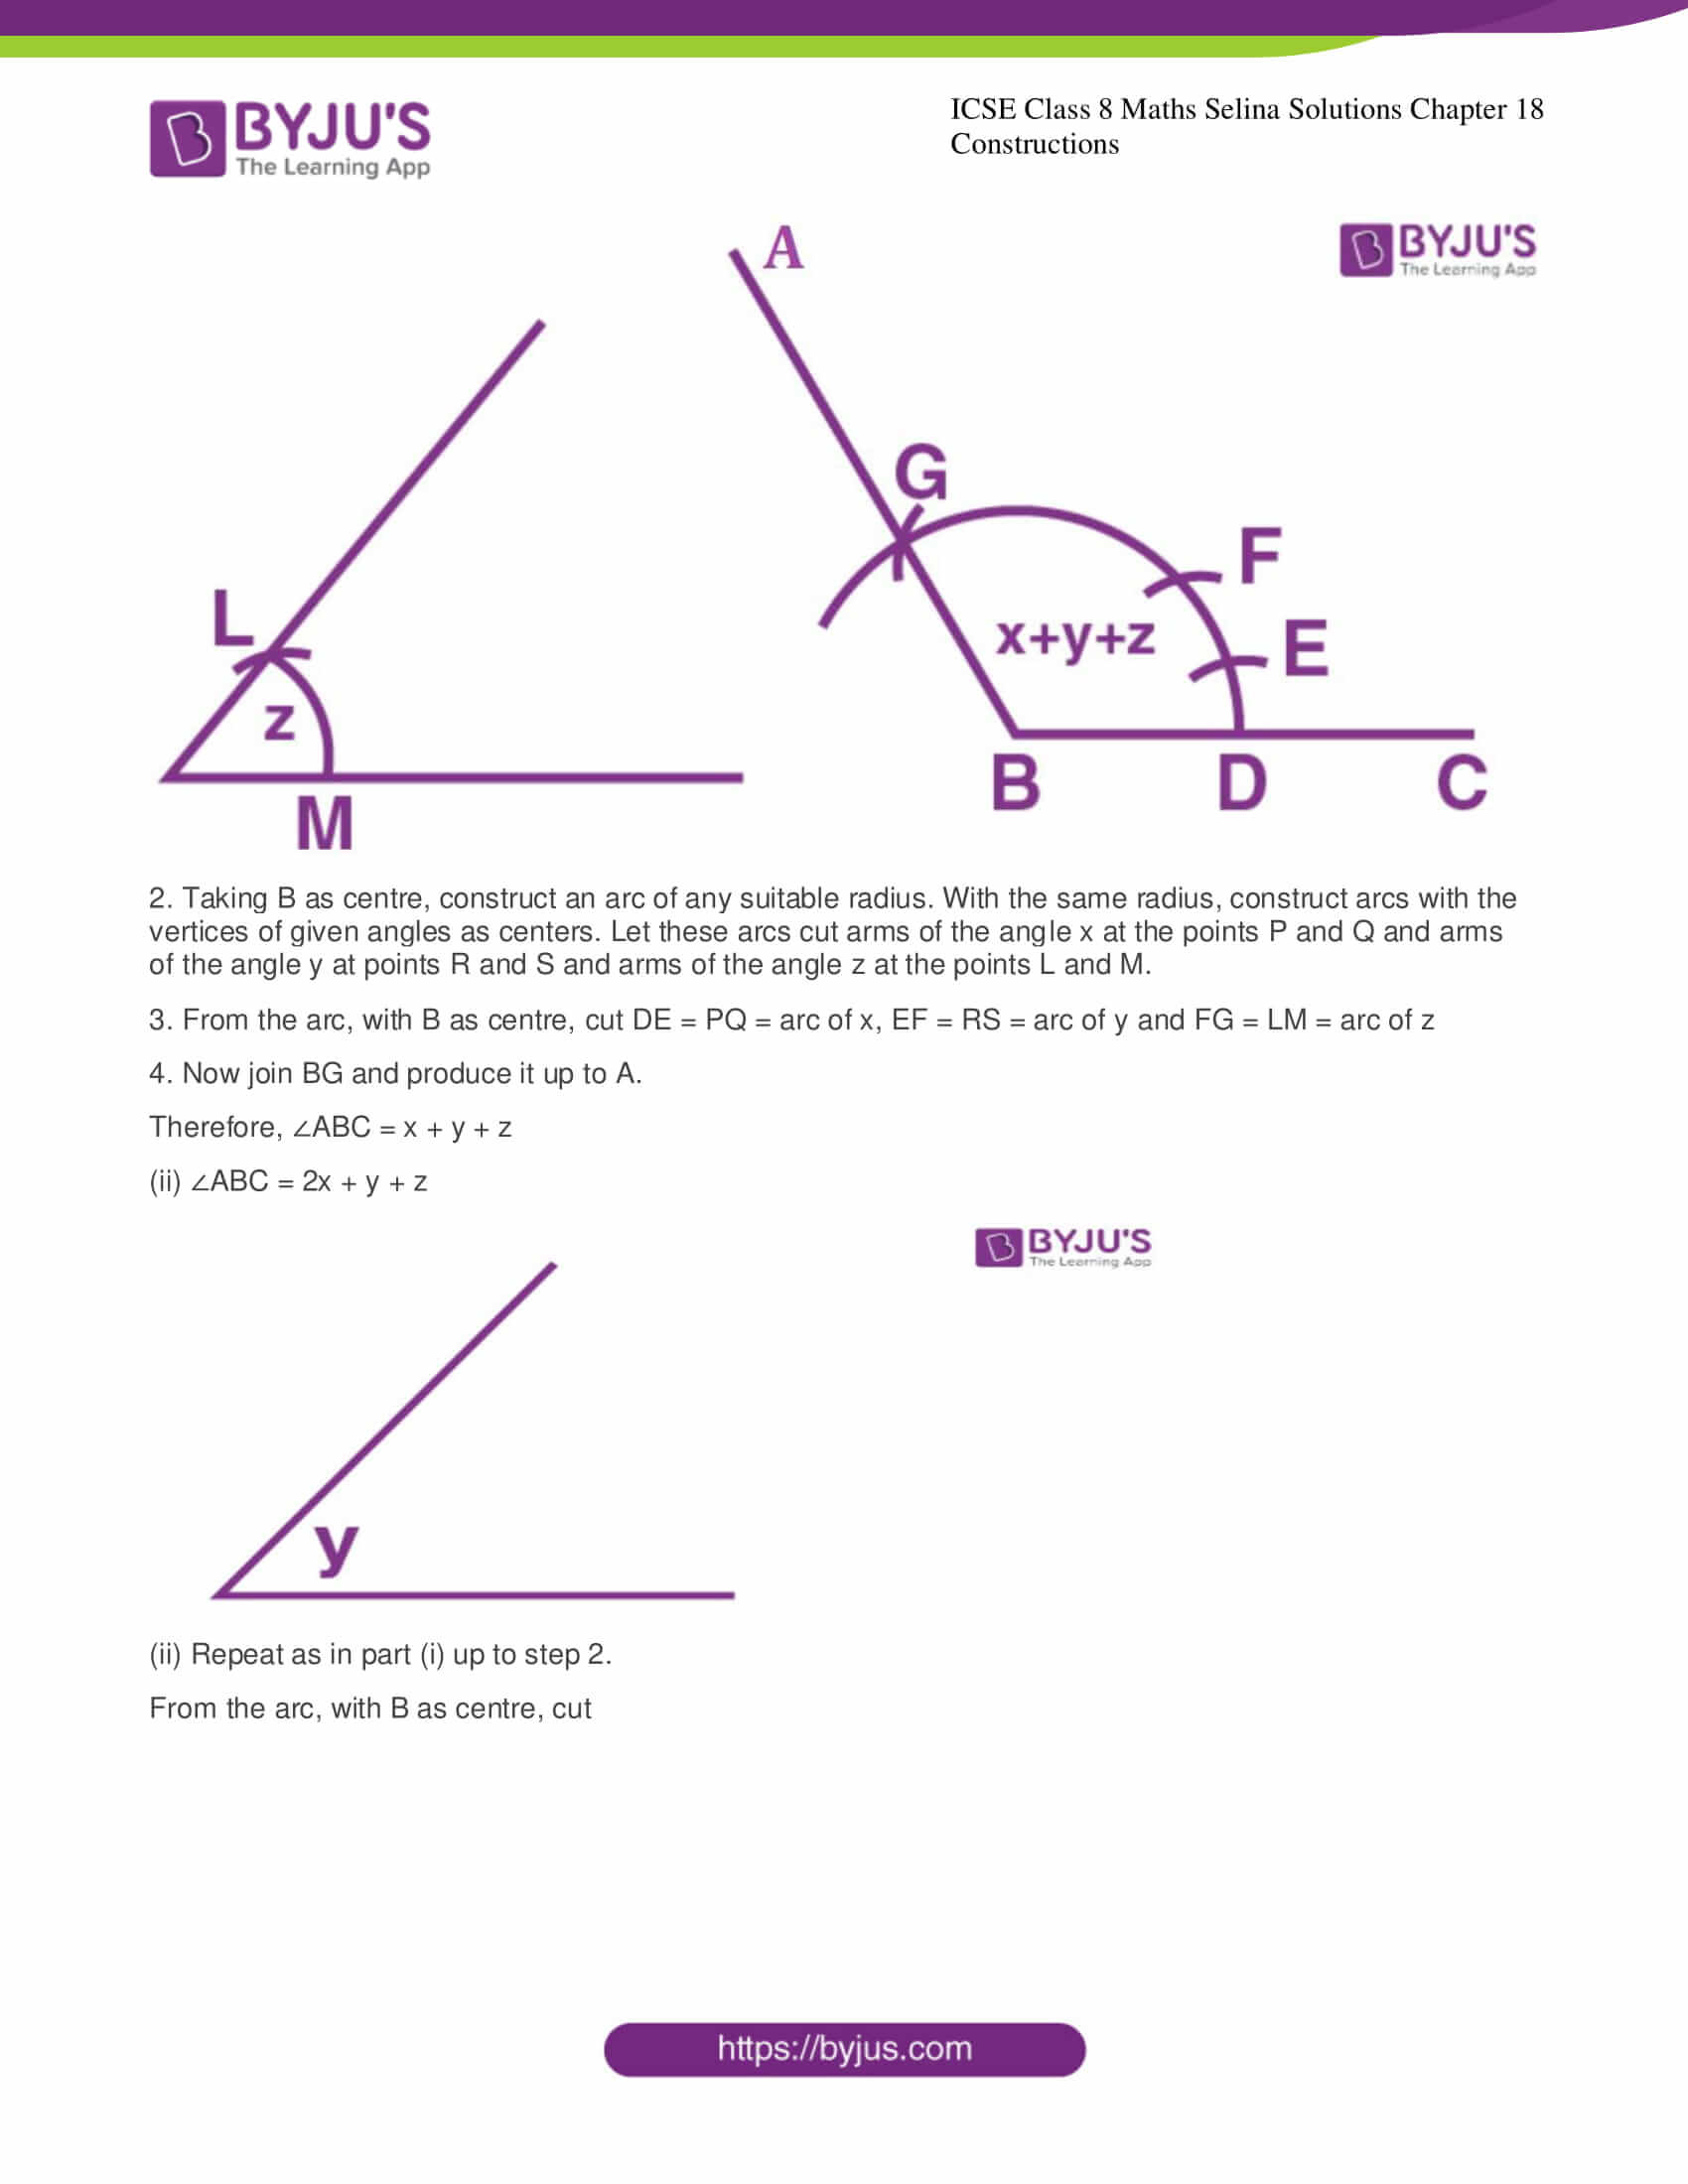 icse class 8 maths may3 selina solutions chapter 18 constructions 04